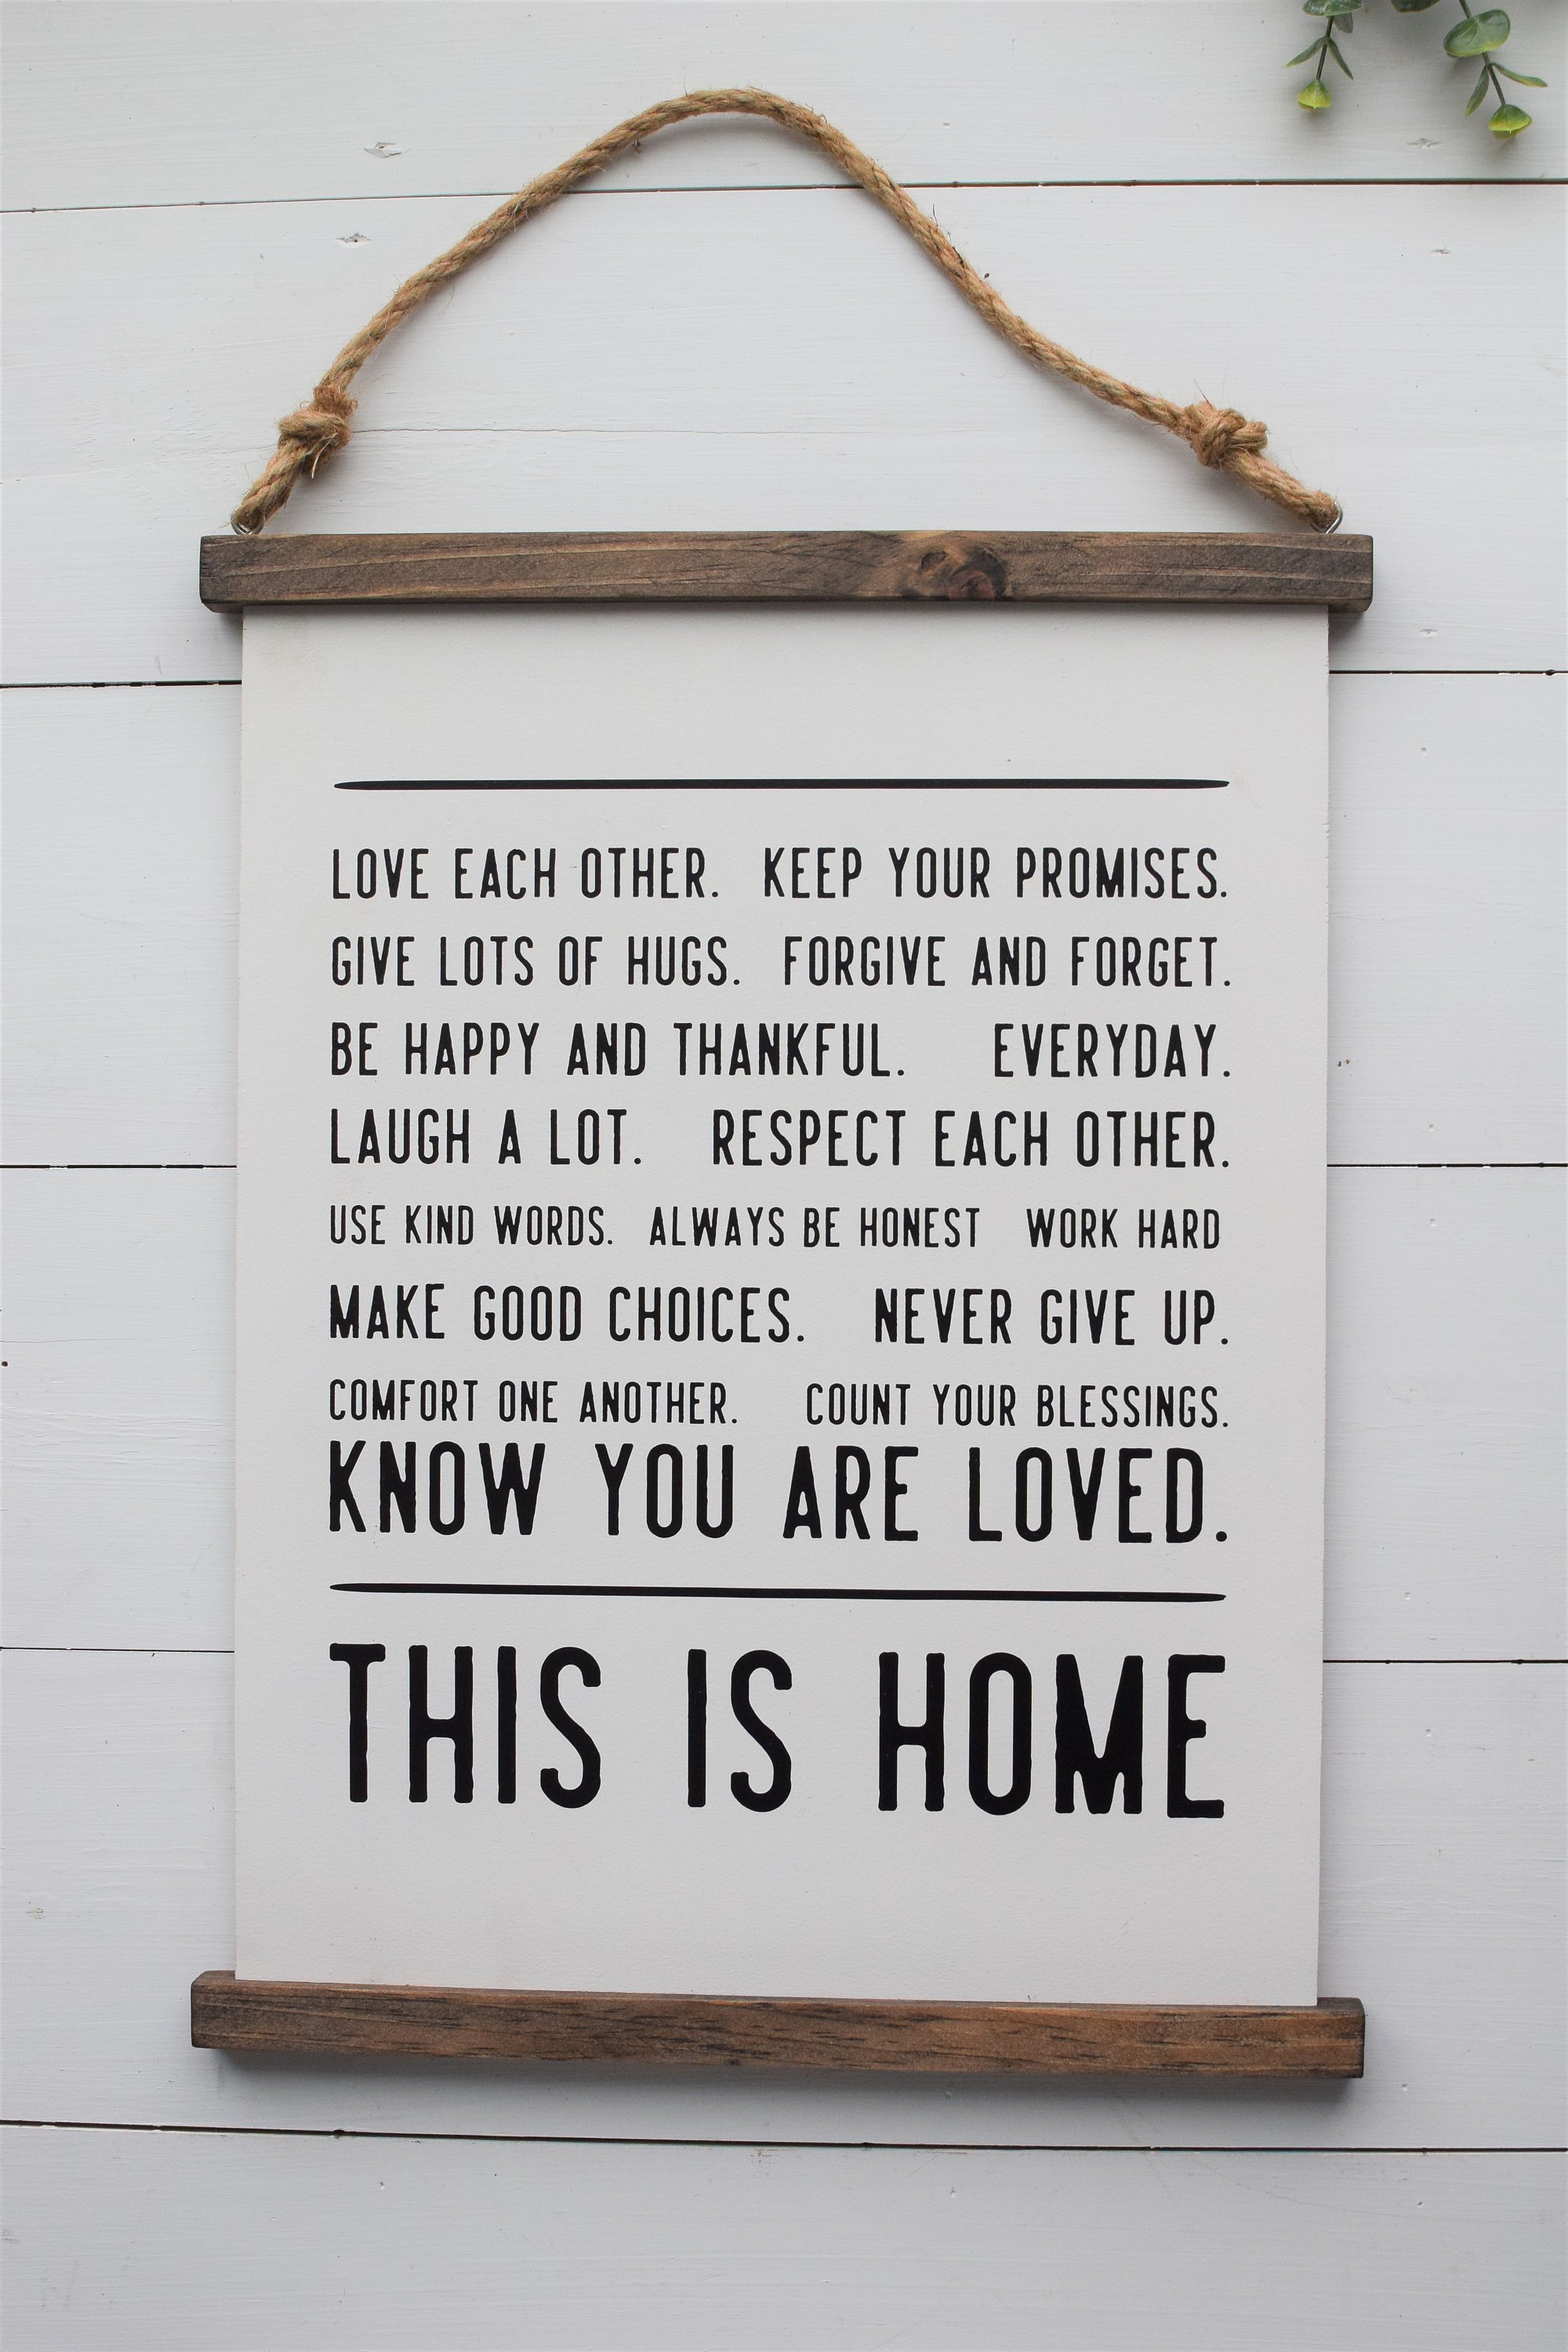 This Is Home | Simple Home and Family